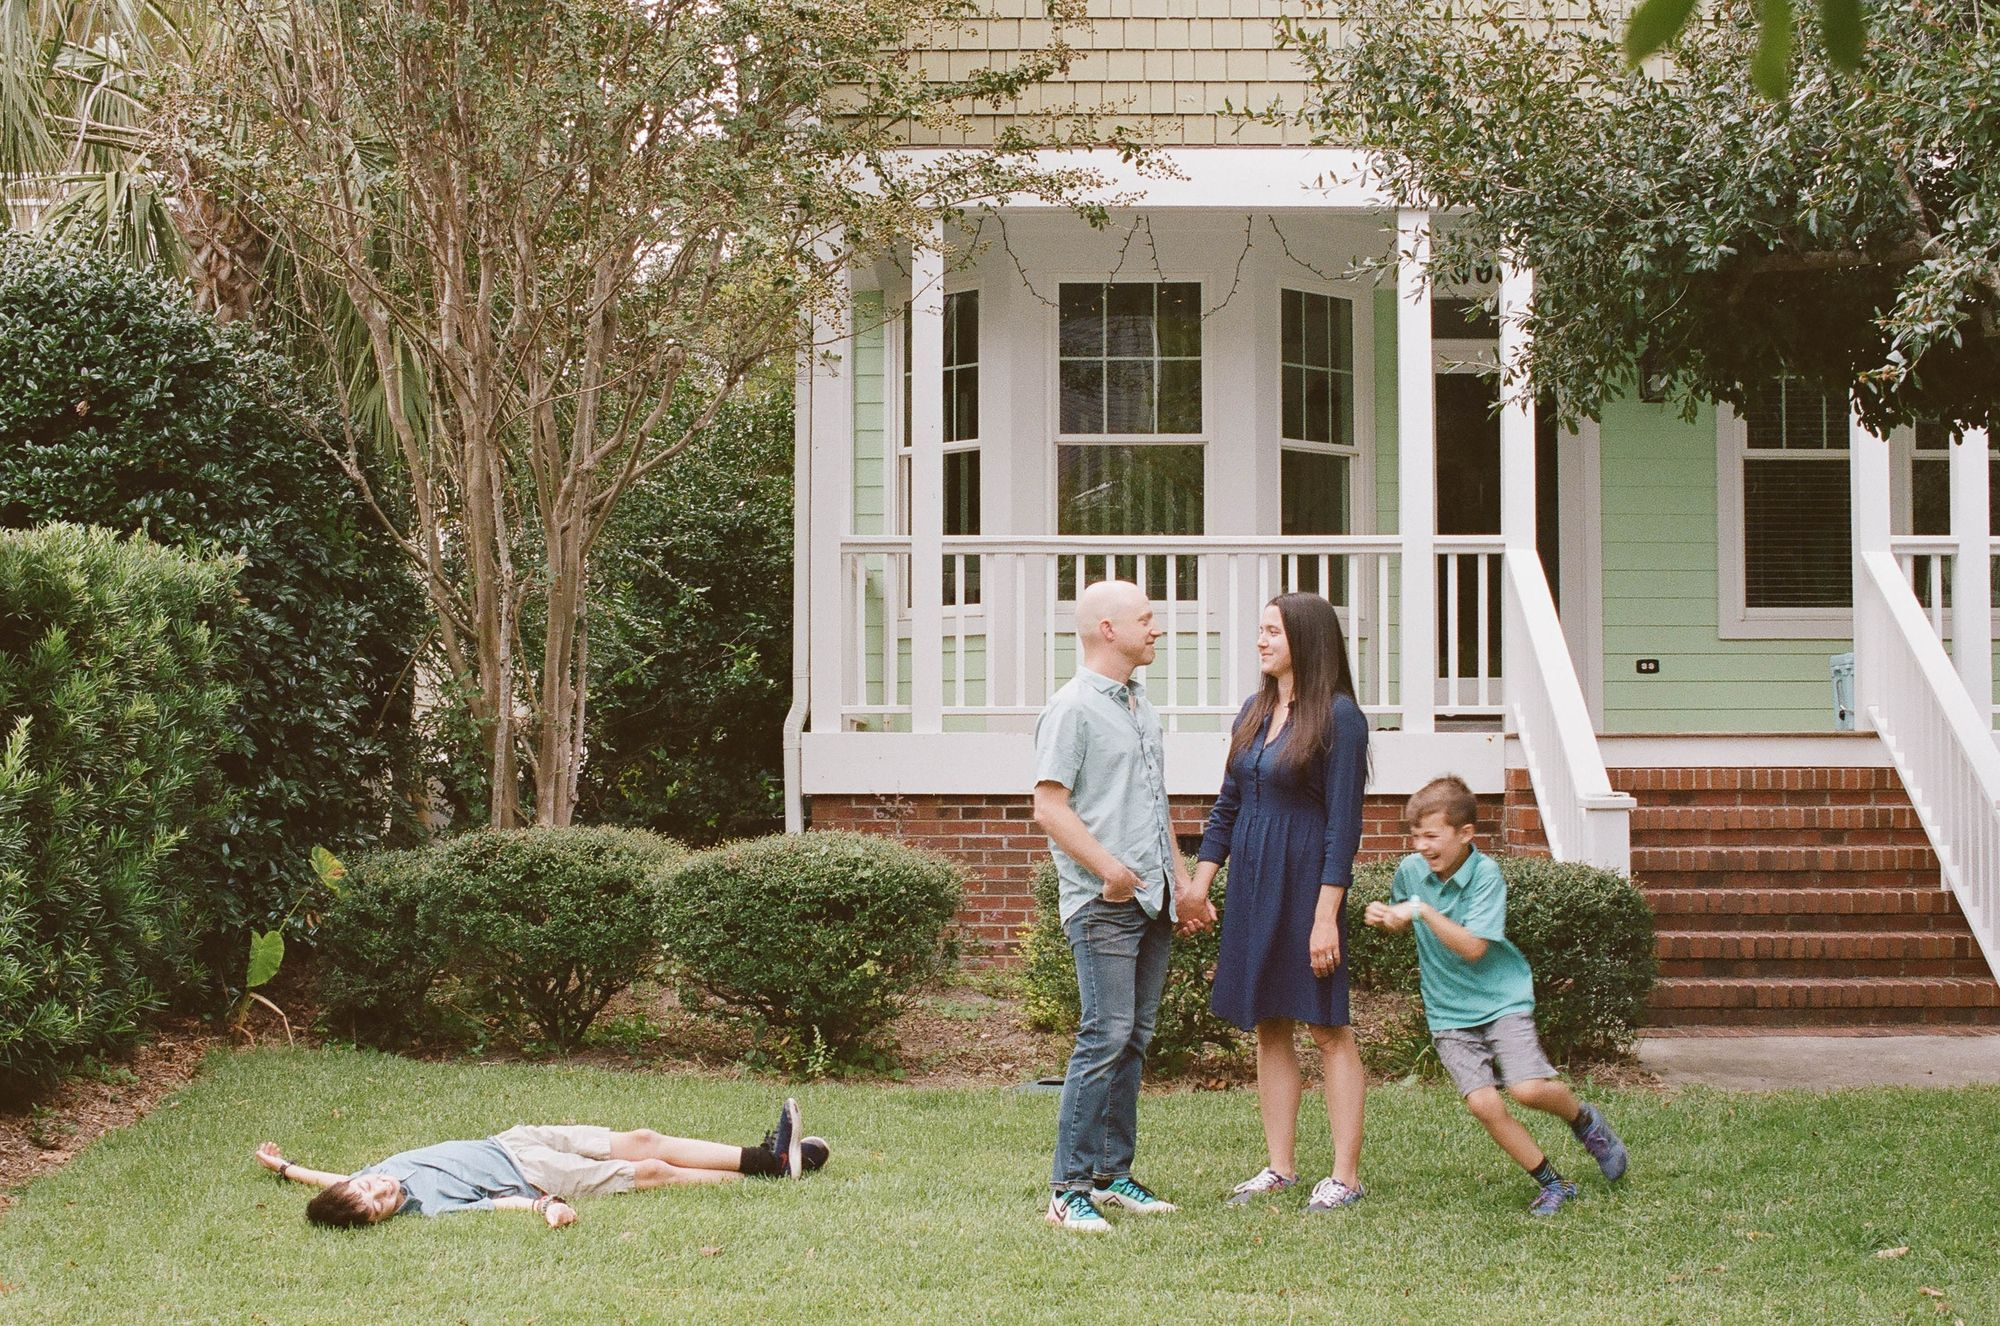 Family Photos On Film In Home Session Leanne Haskins